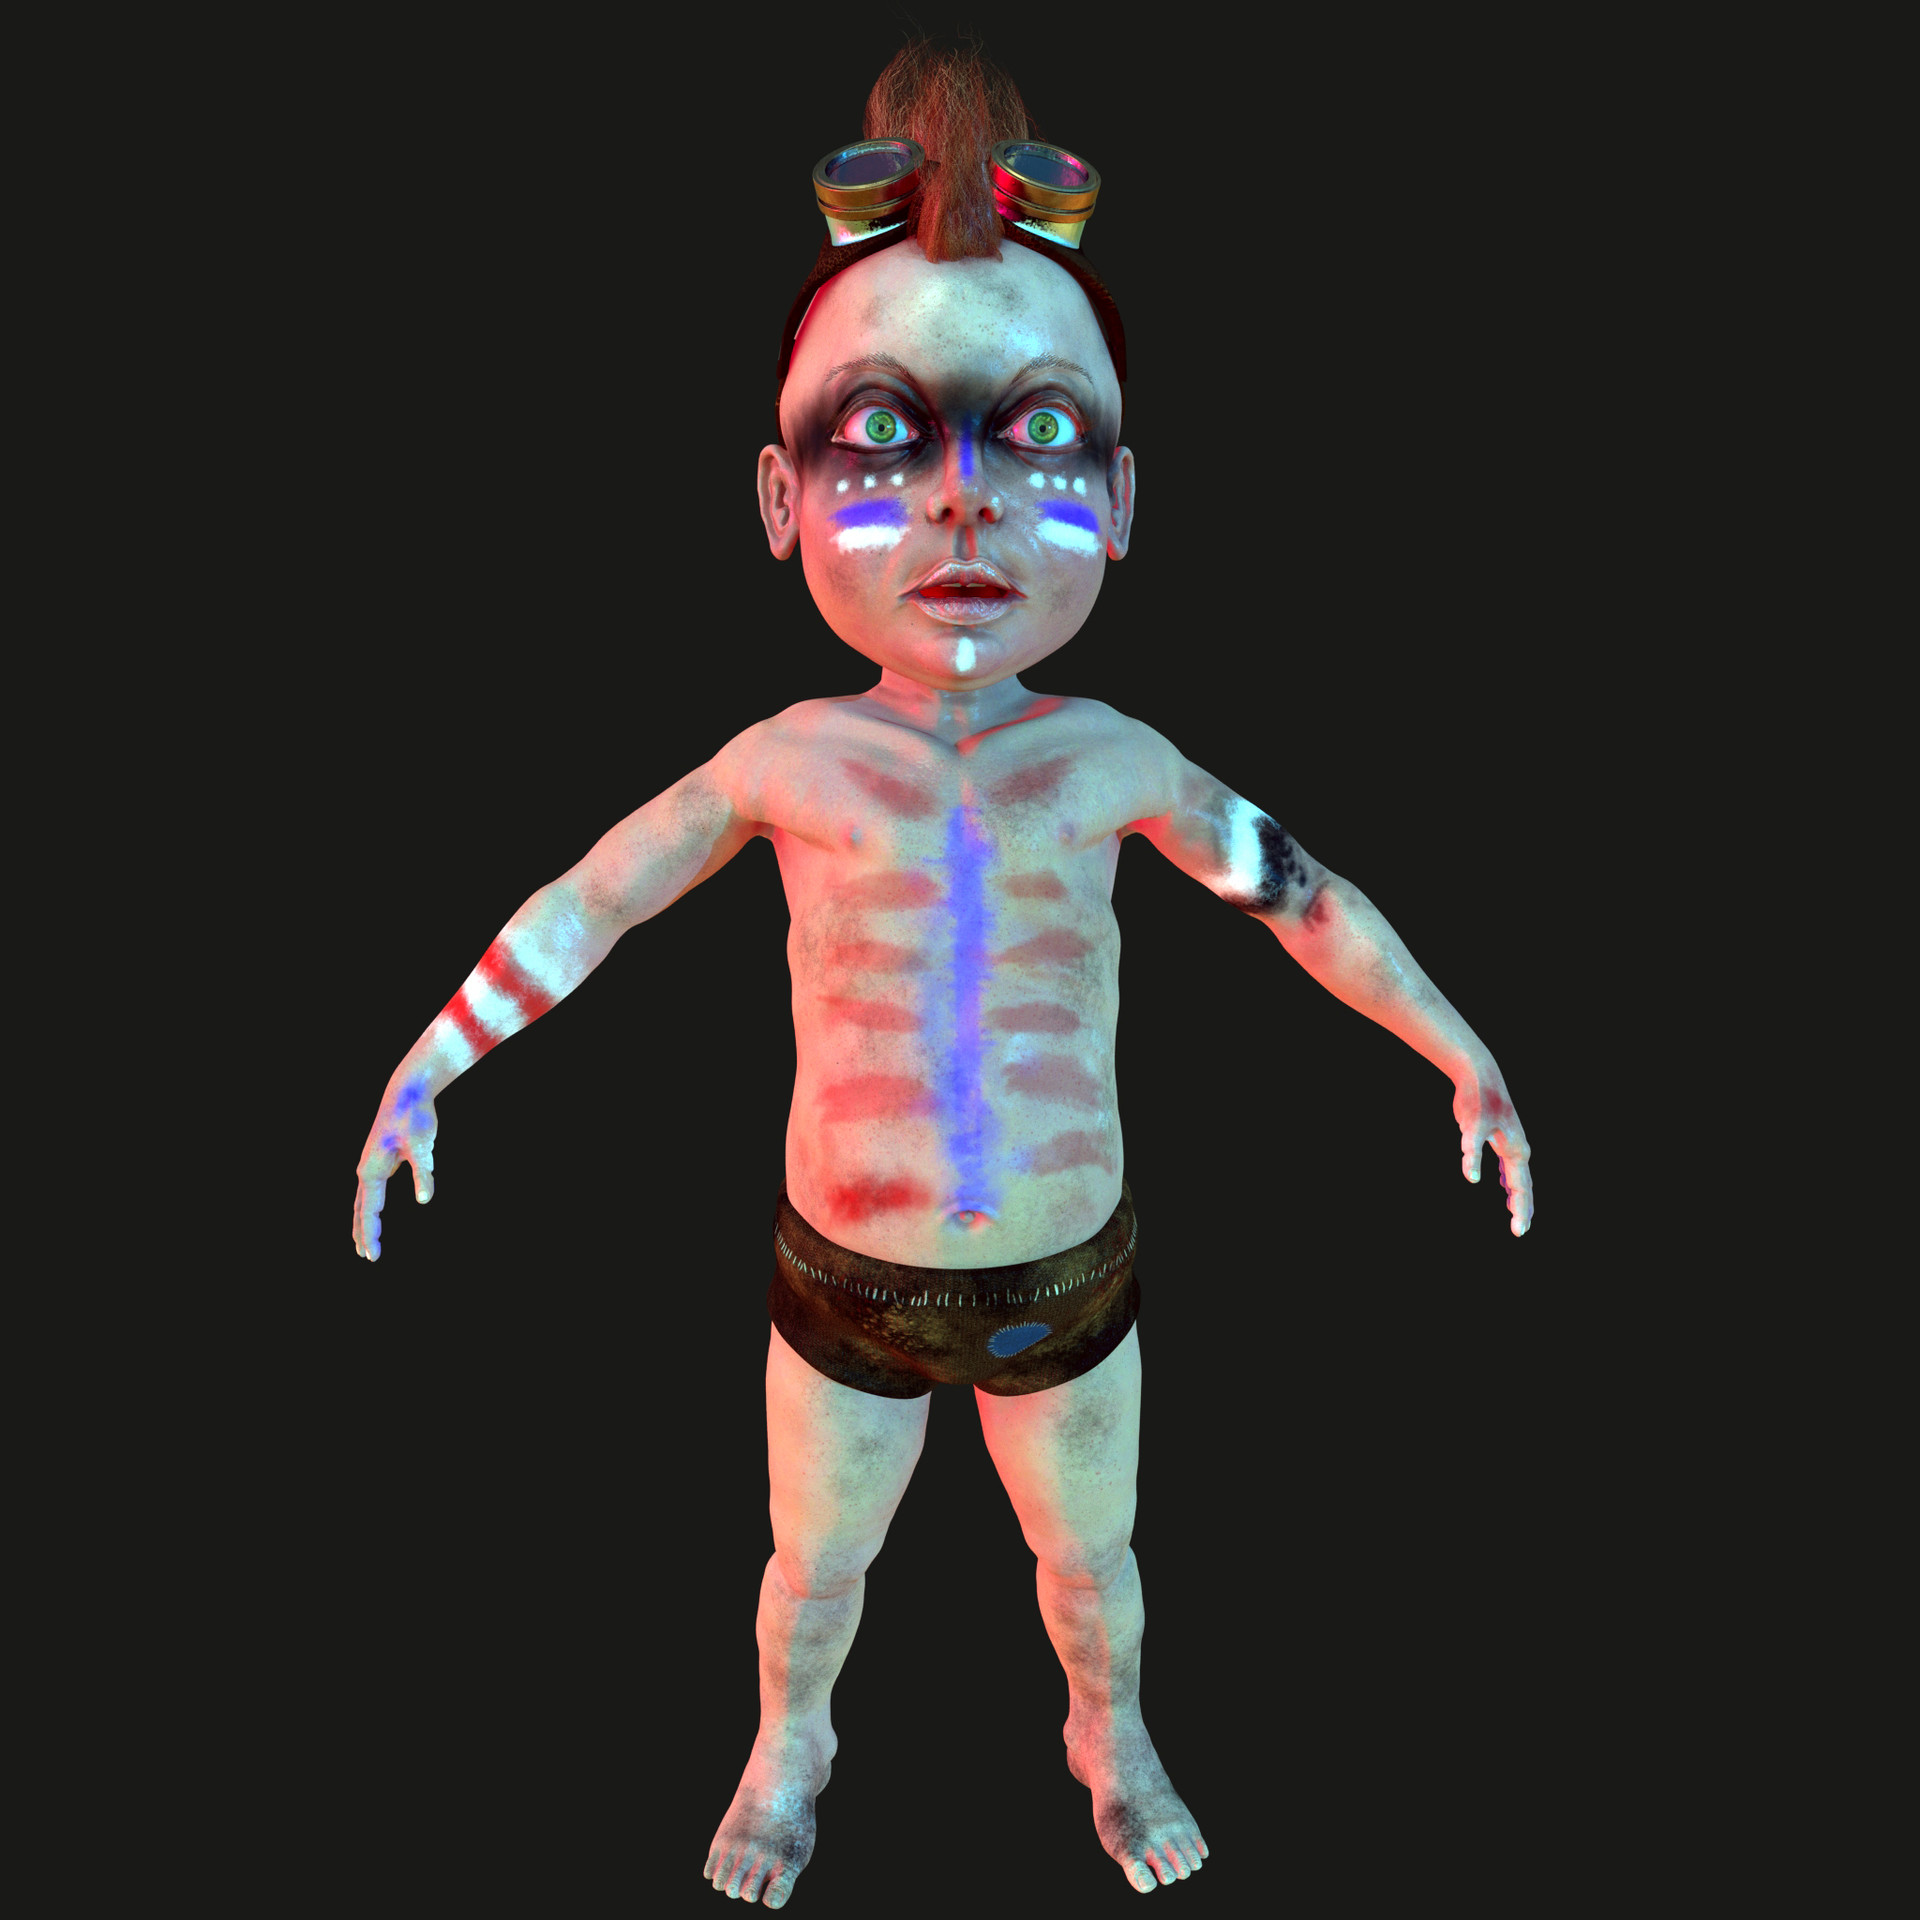 Testlook of baby in Maya, render used - Mental ray. It took 4 days to make the whole character.